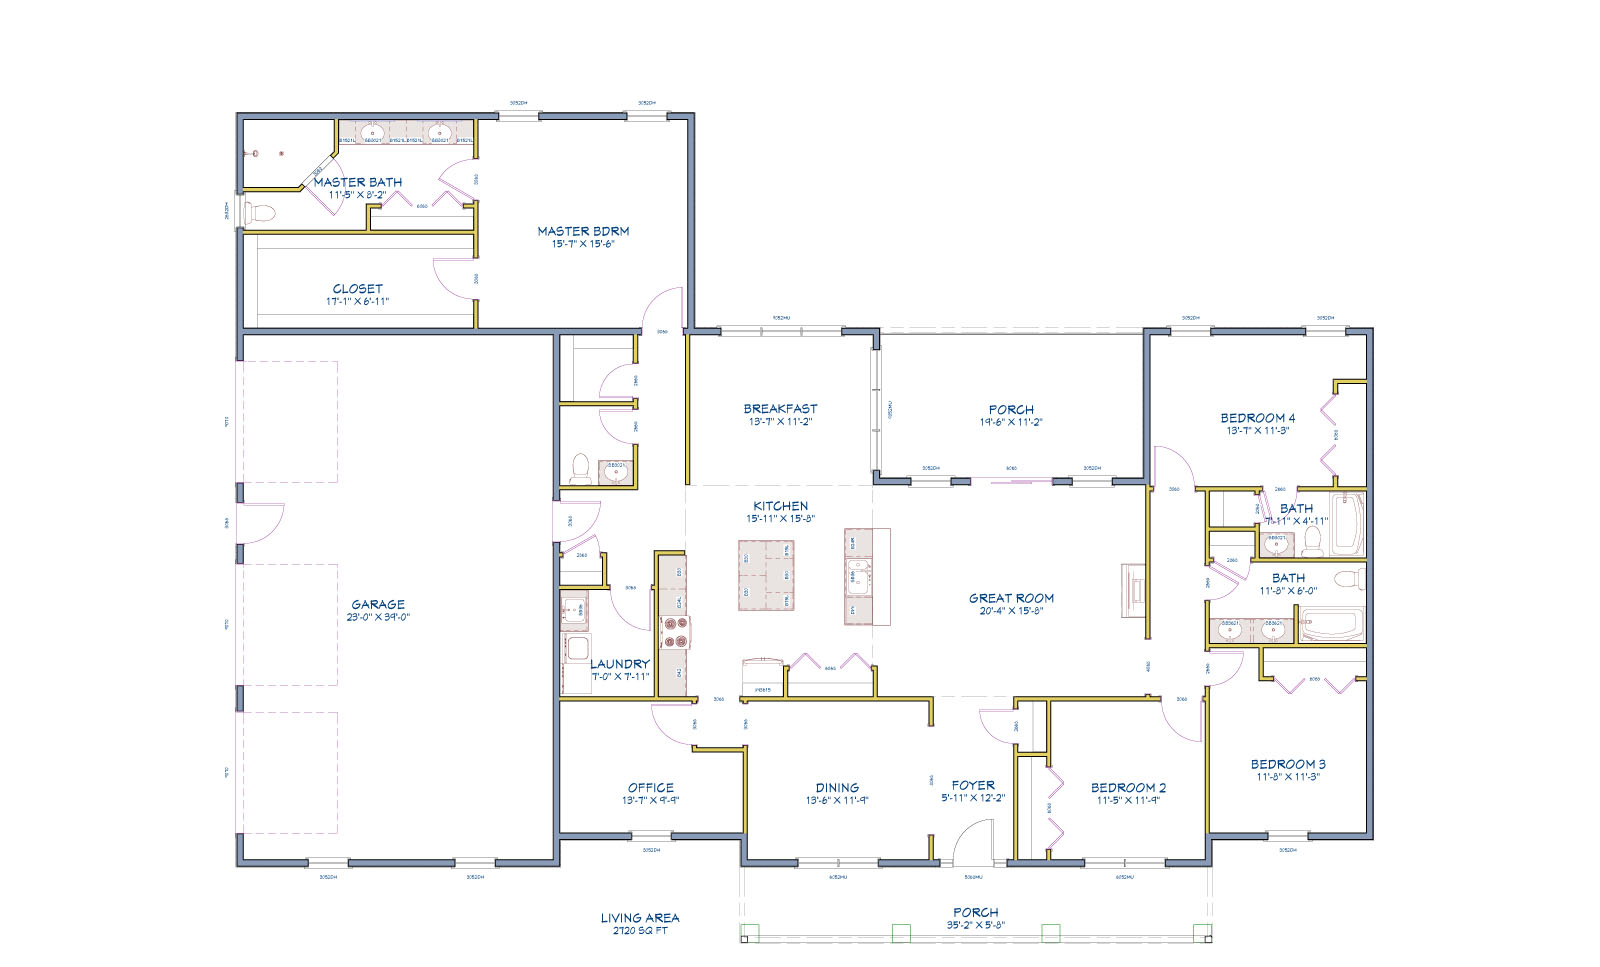 New home floor plans for a luxury single story home